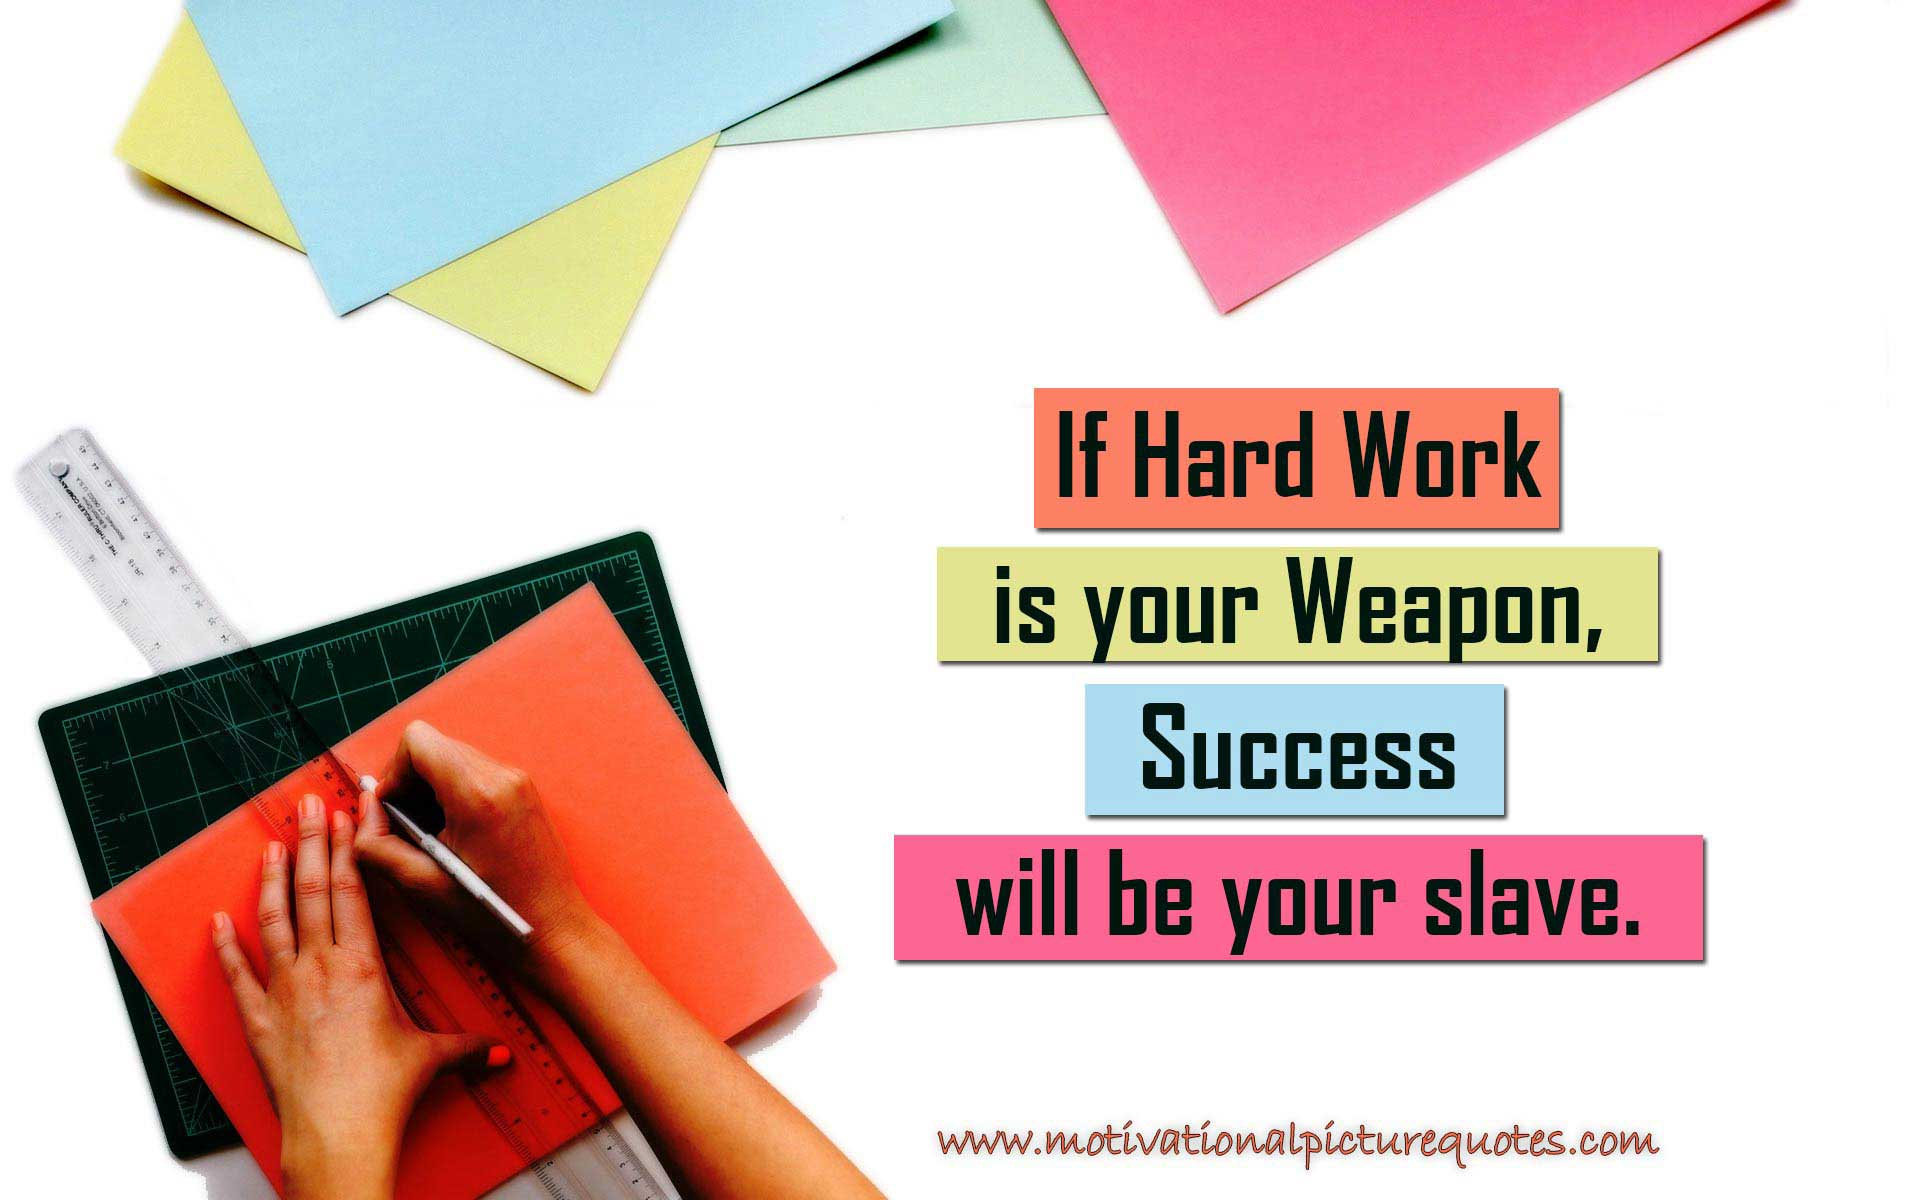 marathi essays on hard work Essay on importance of hard work in marathi trying to find one for my class how to make a survey for research paper essays about my school life vaccination.